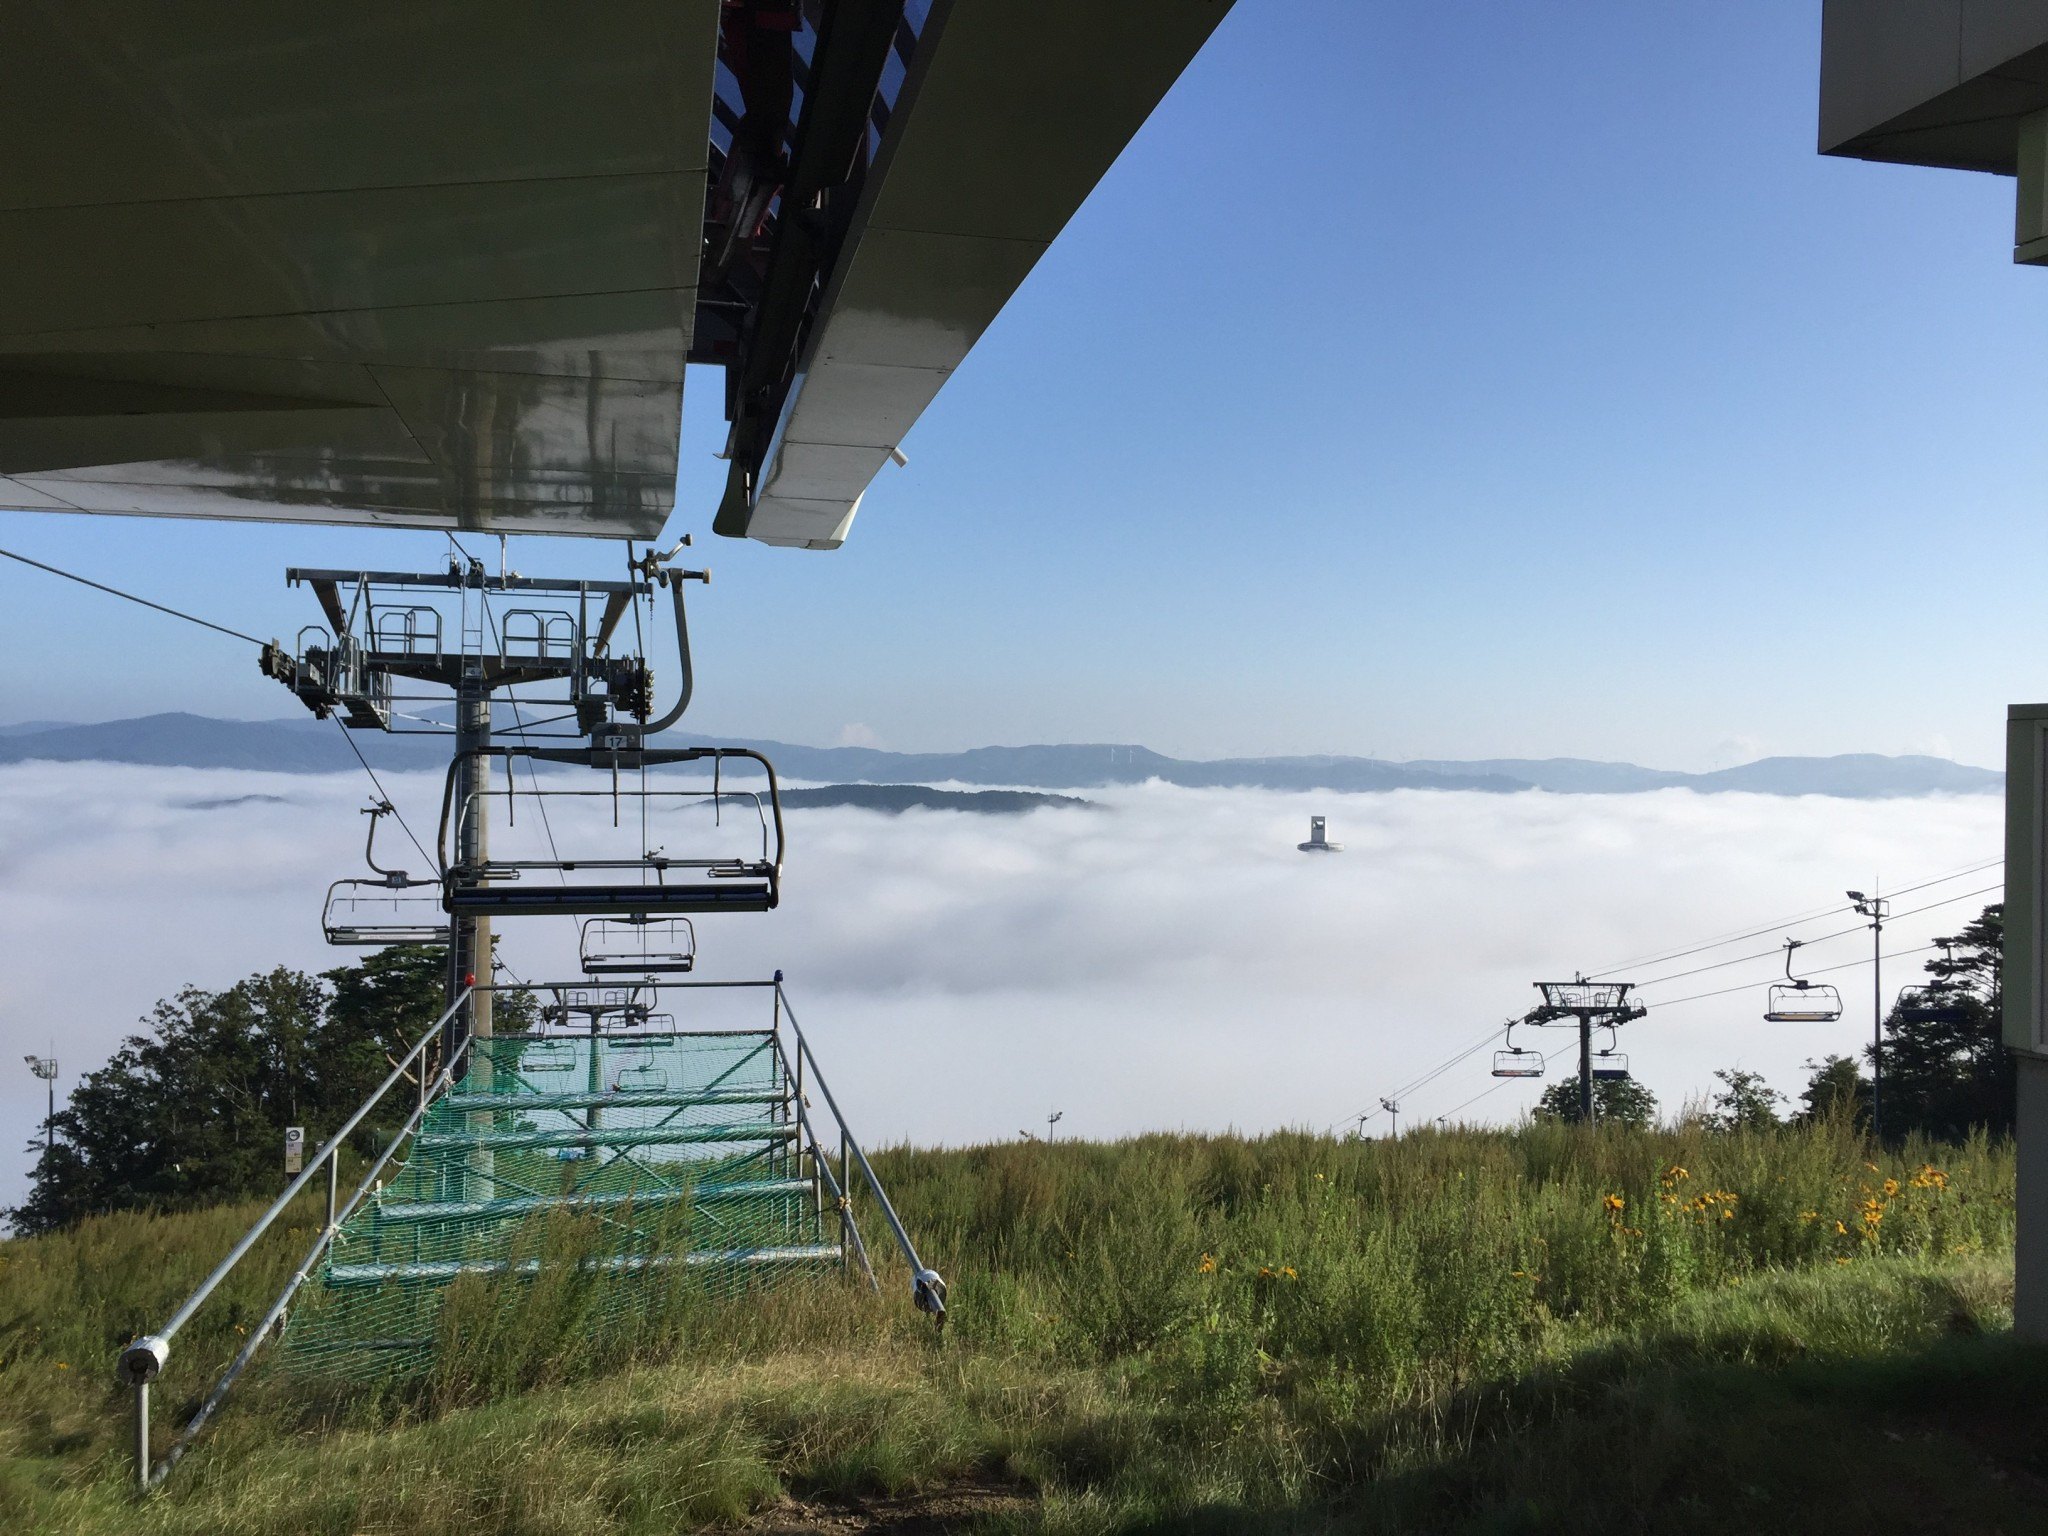 A view into the mist-strewn valley where the Alpensia hub is housed and where he top of the ski jumping tower for Pyeongchang 2018 is just visible above the clouds ©Lorna Campbell